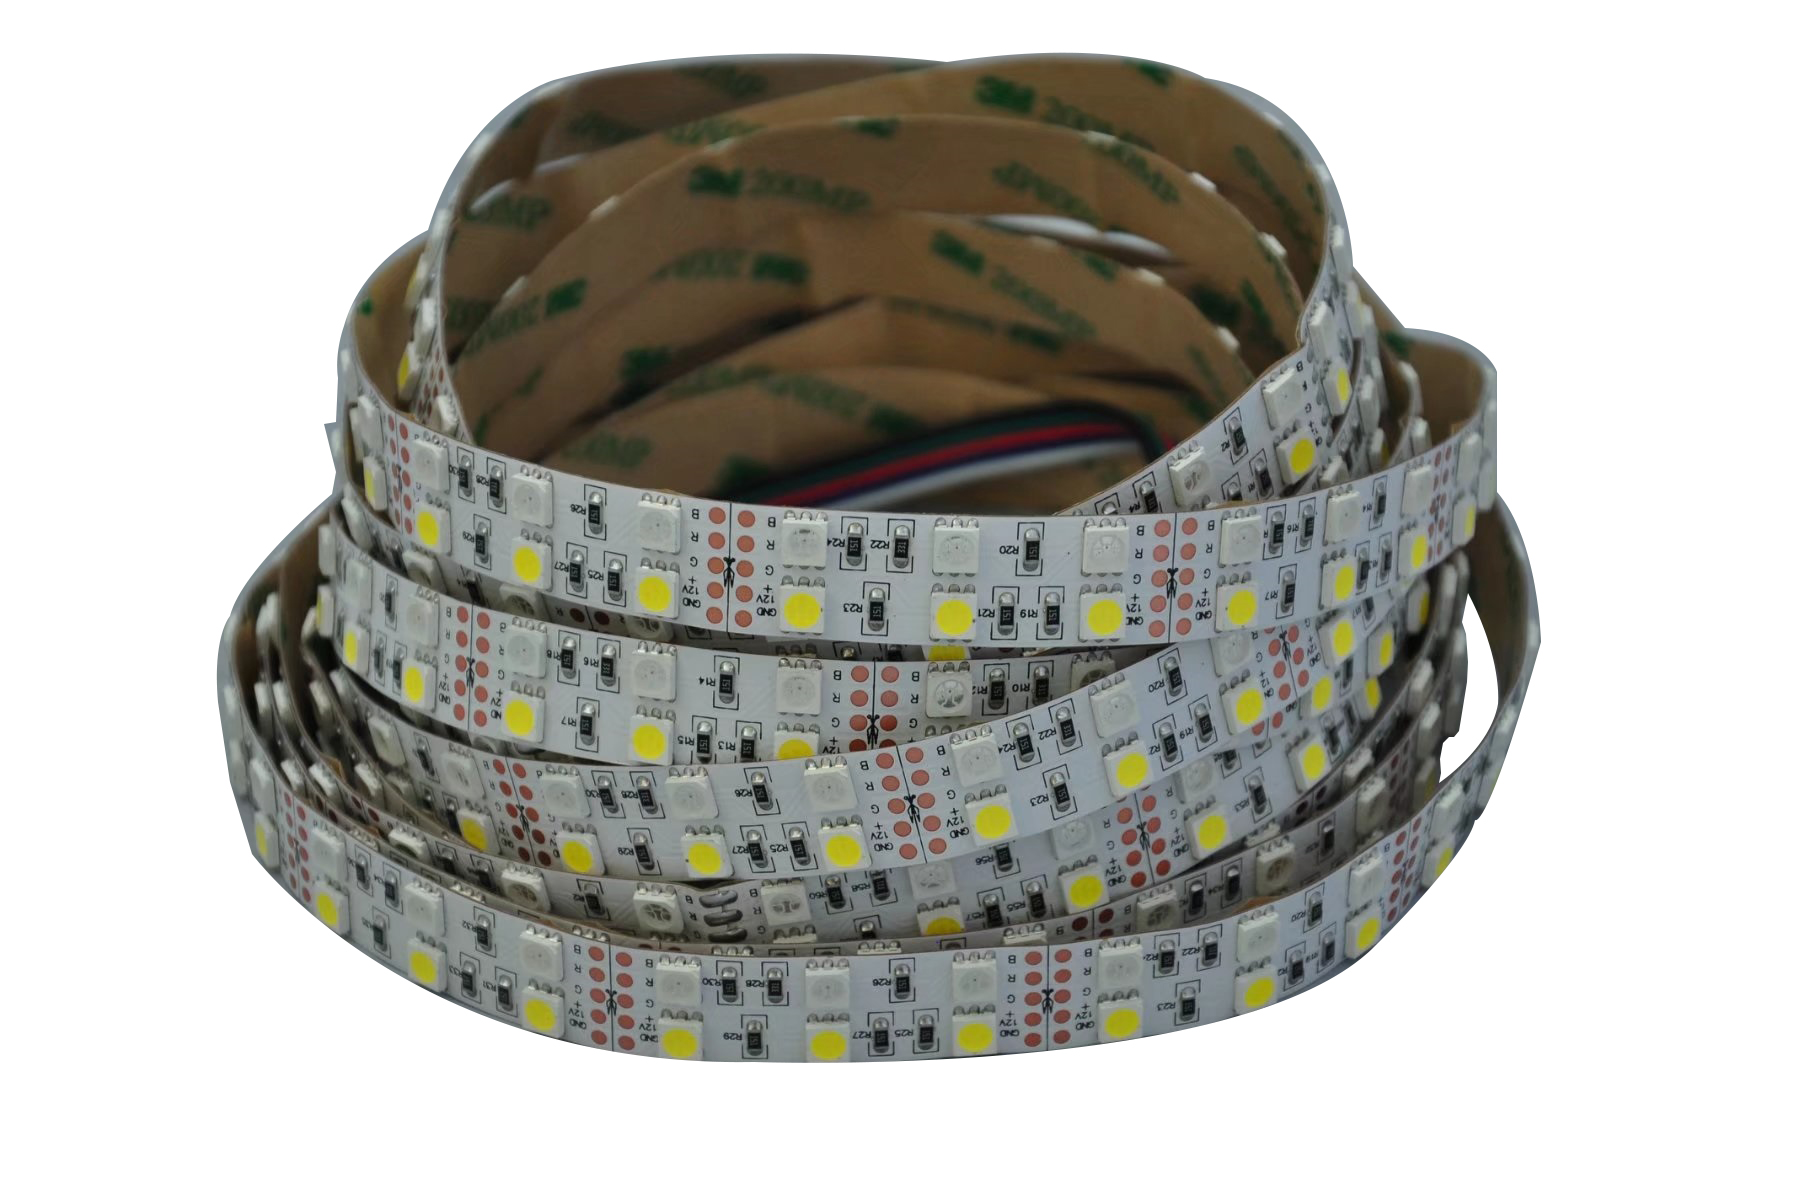 RGB+W SMD5050 led strip 120LED/M